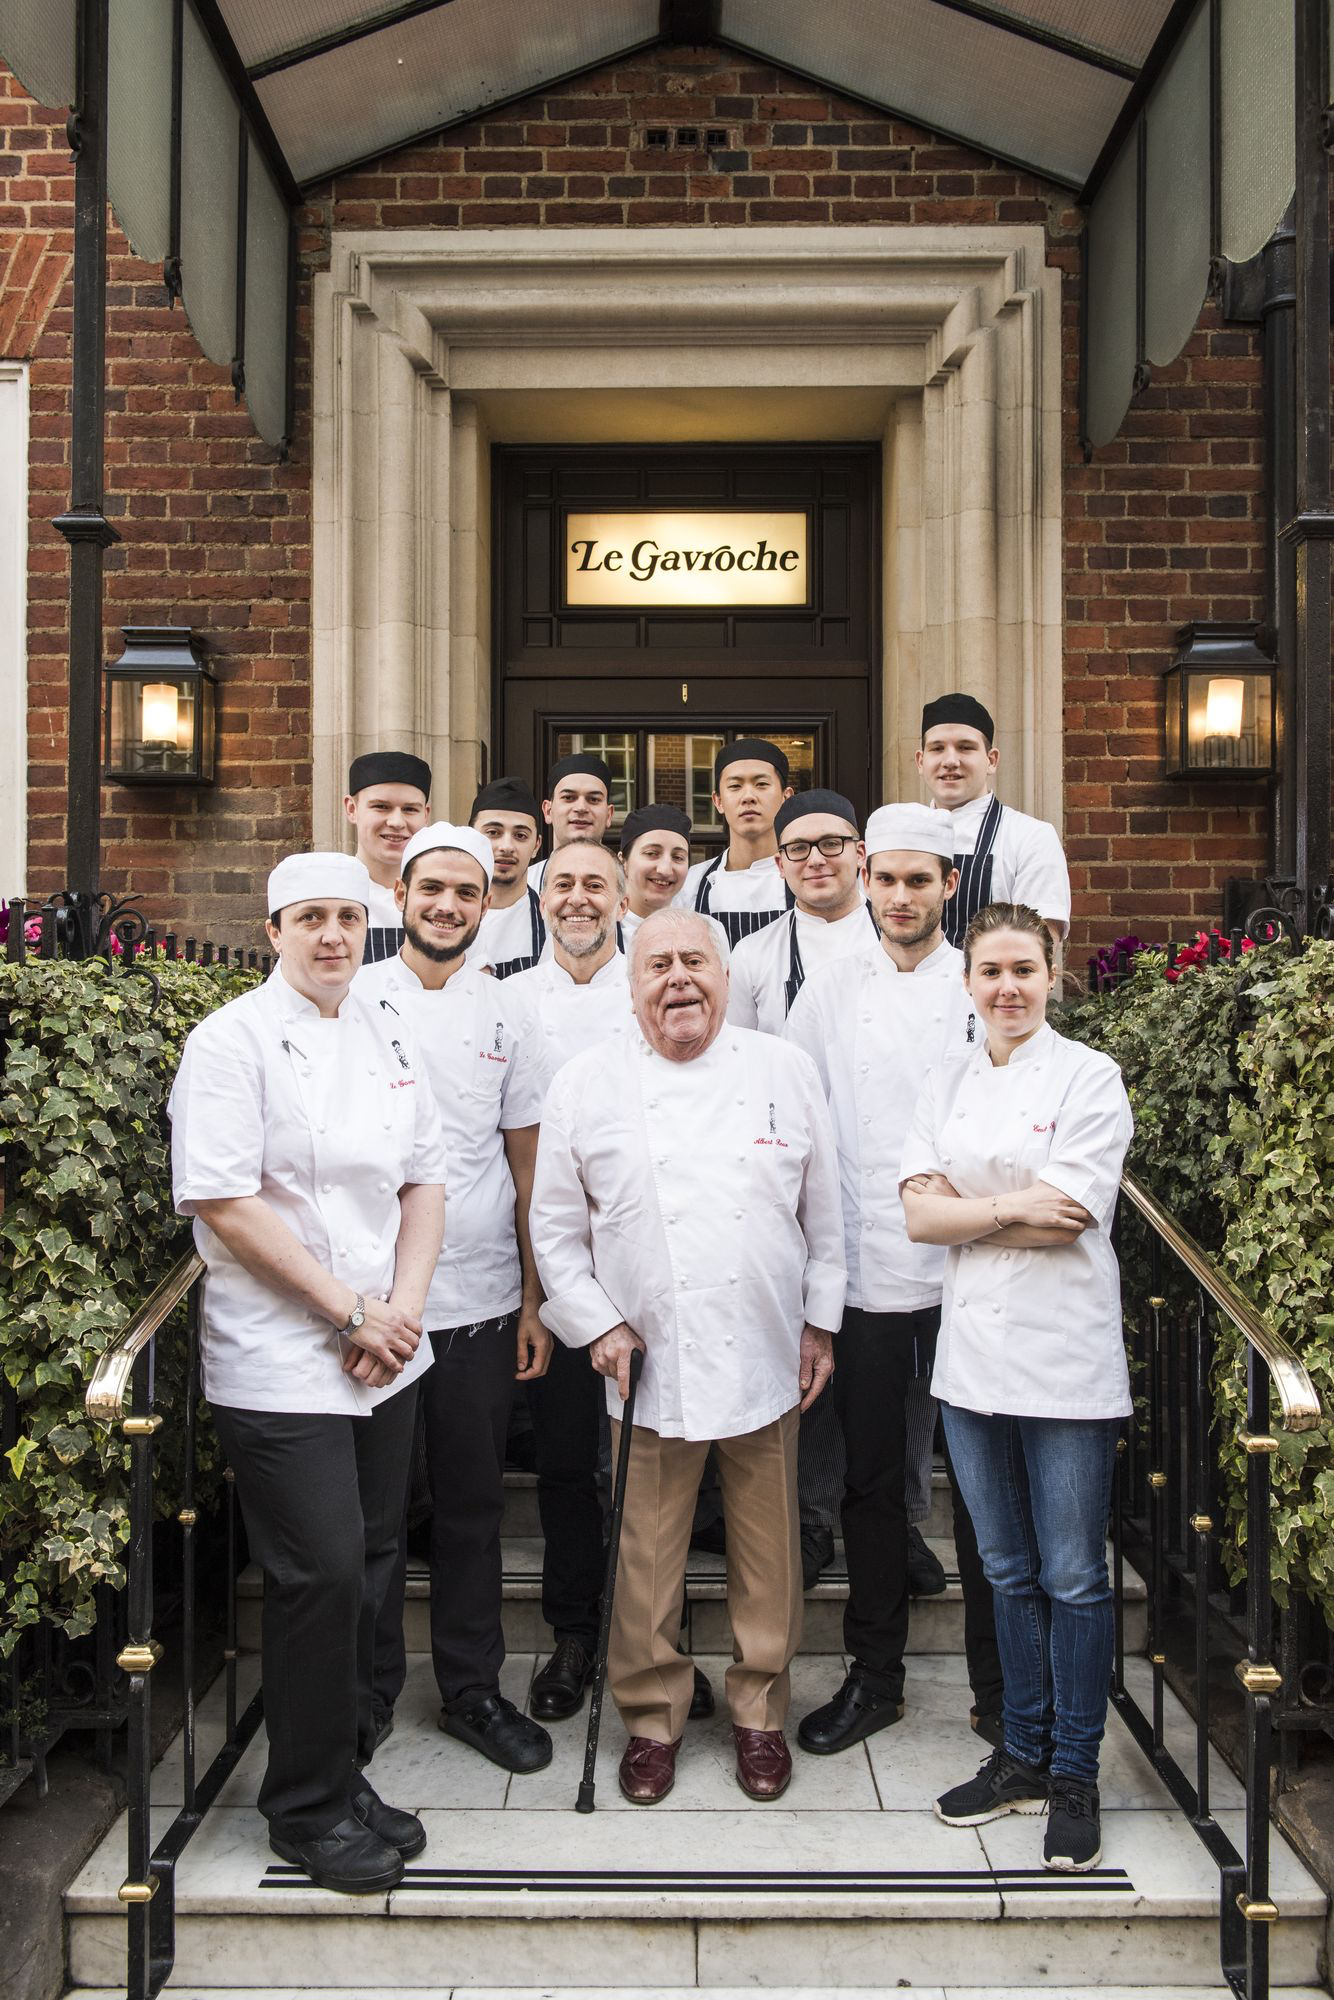 Le Gavroche celebrates 50th birthday - The Drinks Business